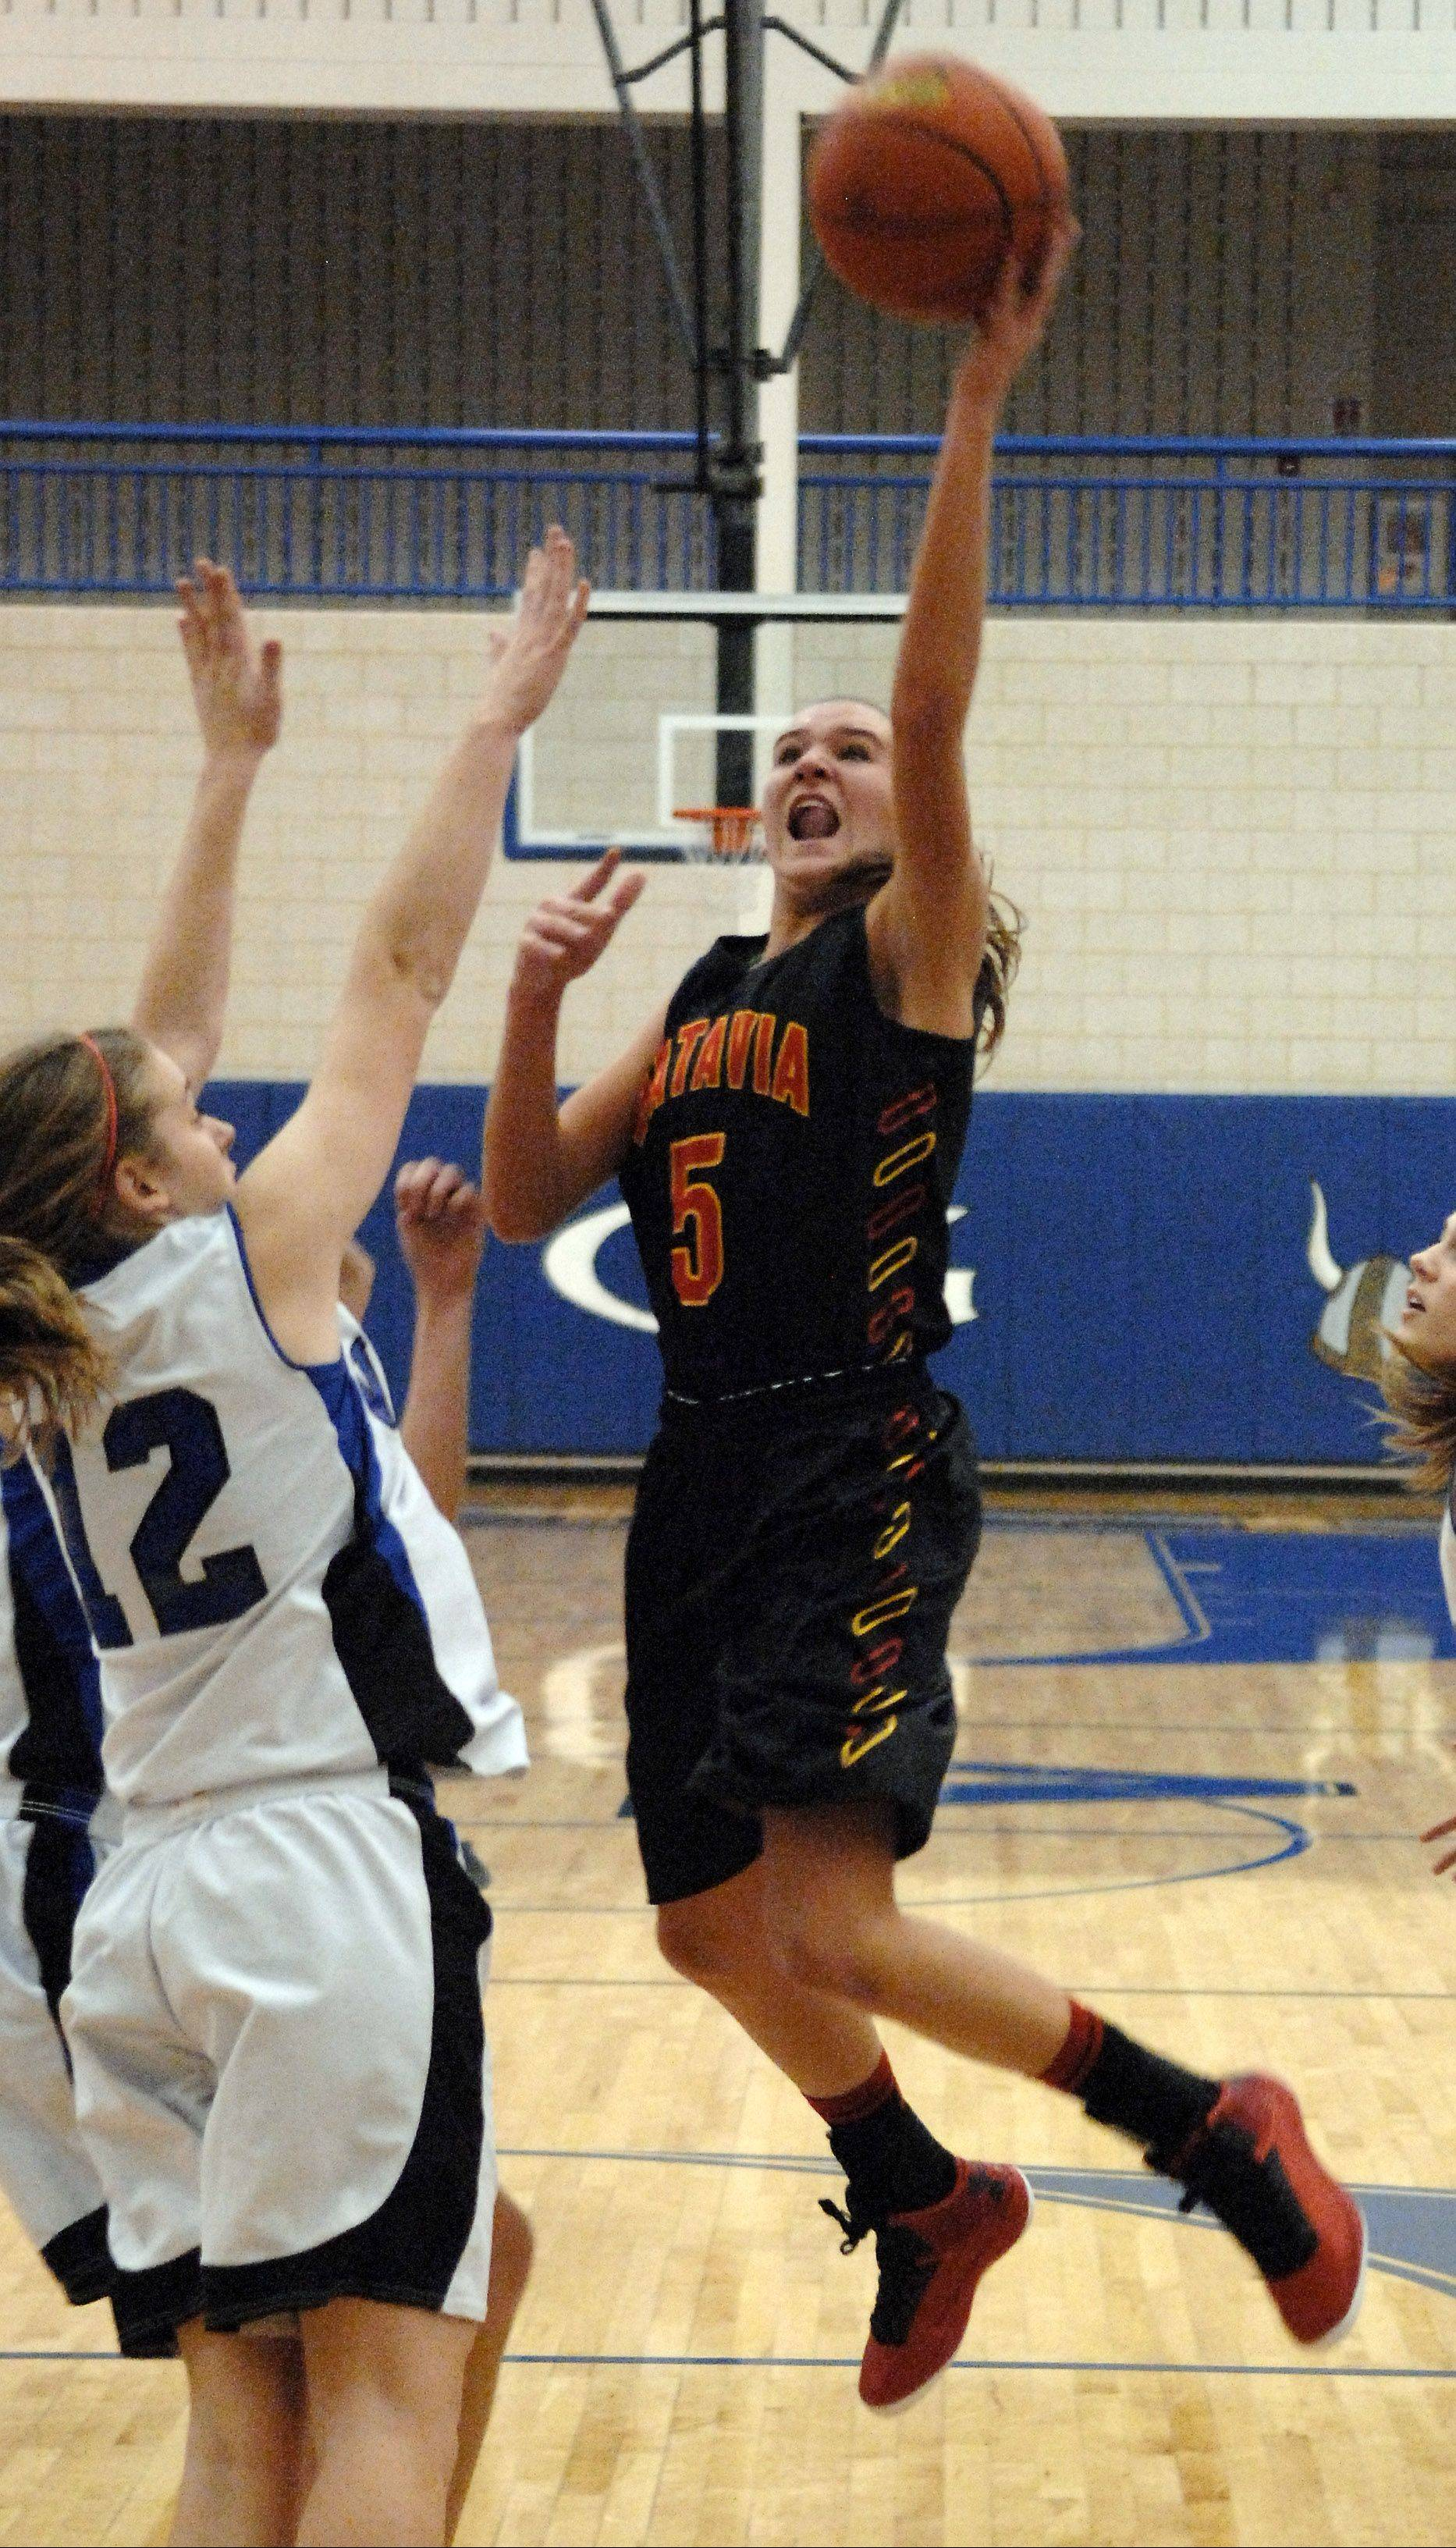 Batavia�s Liza Fruendt drives to the basket against Geneva during Friday�s game at Geneva.